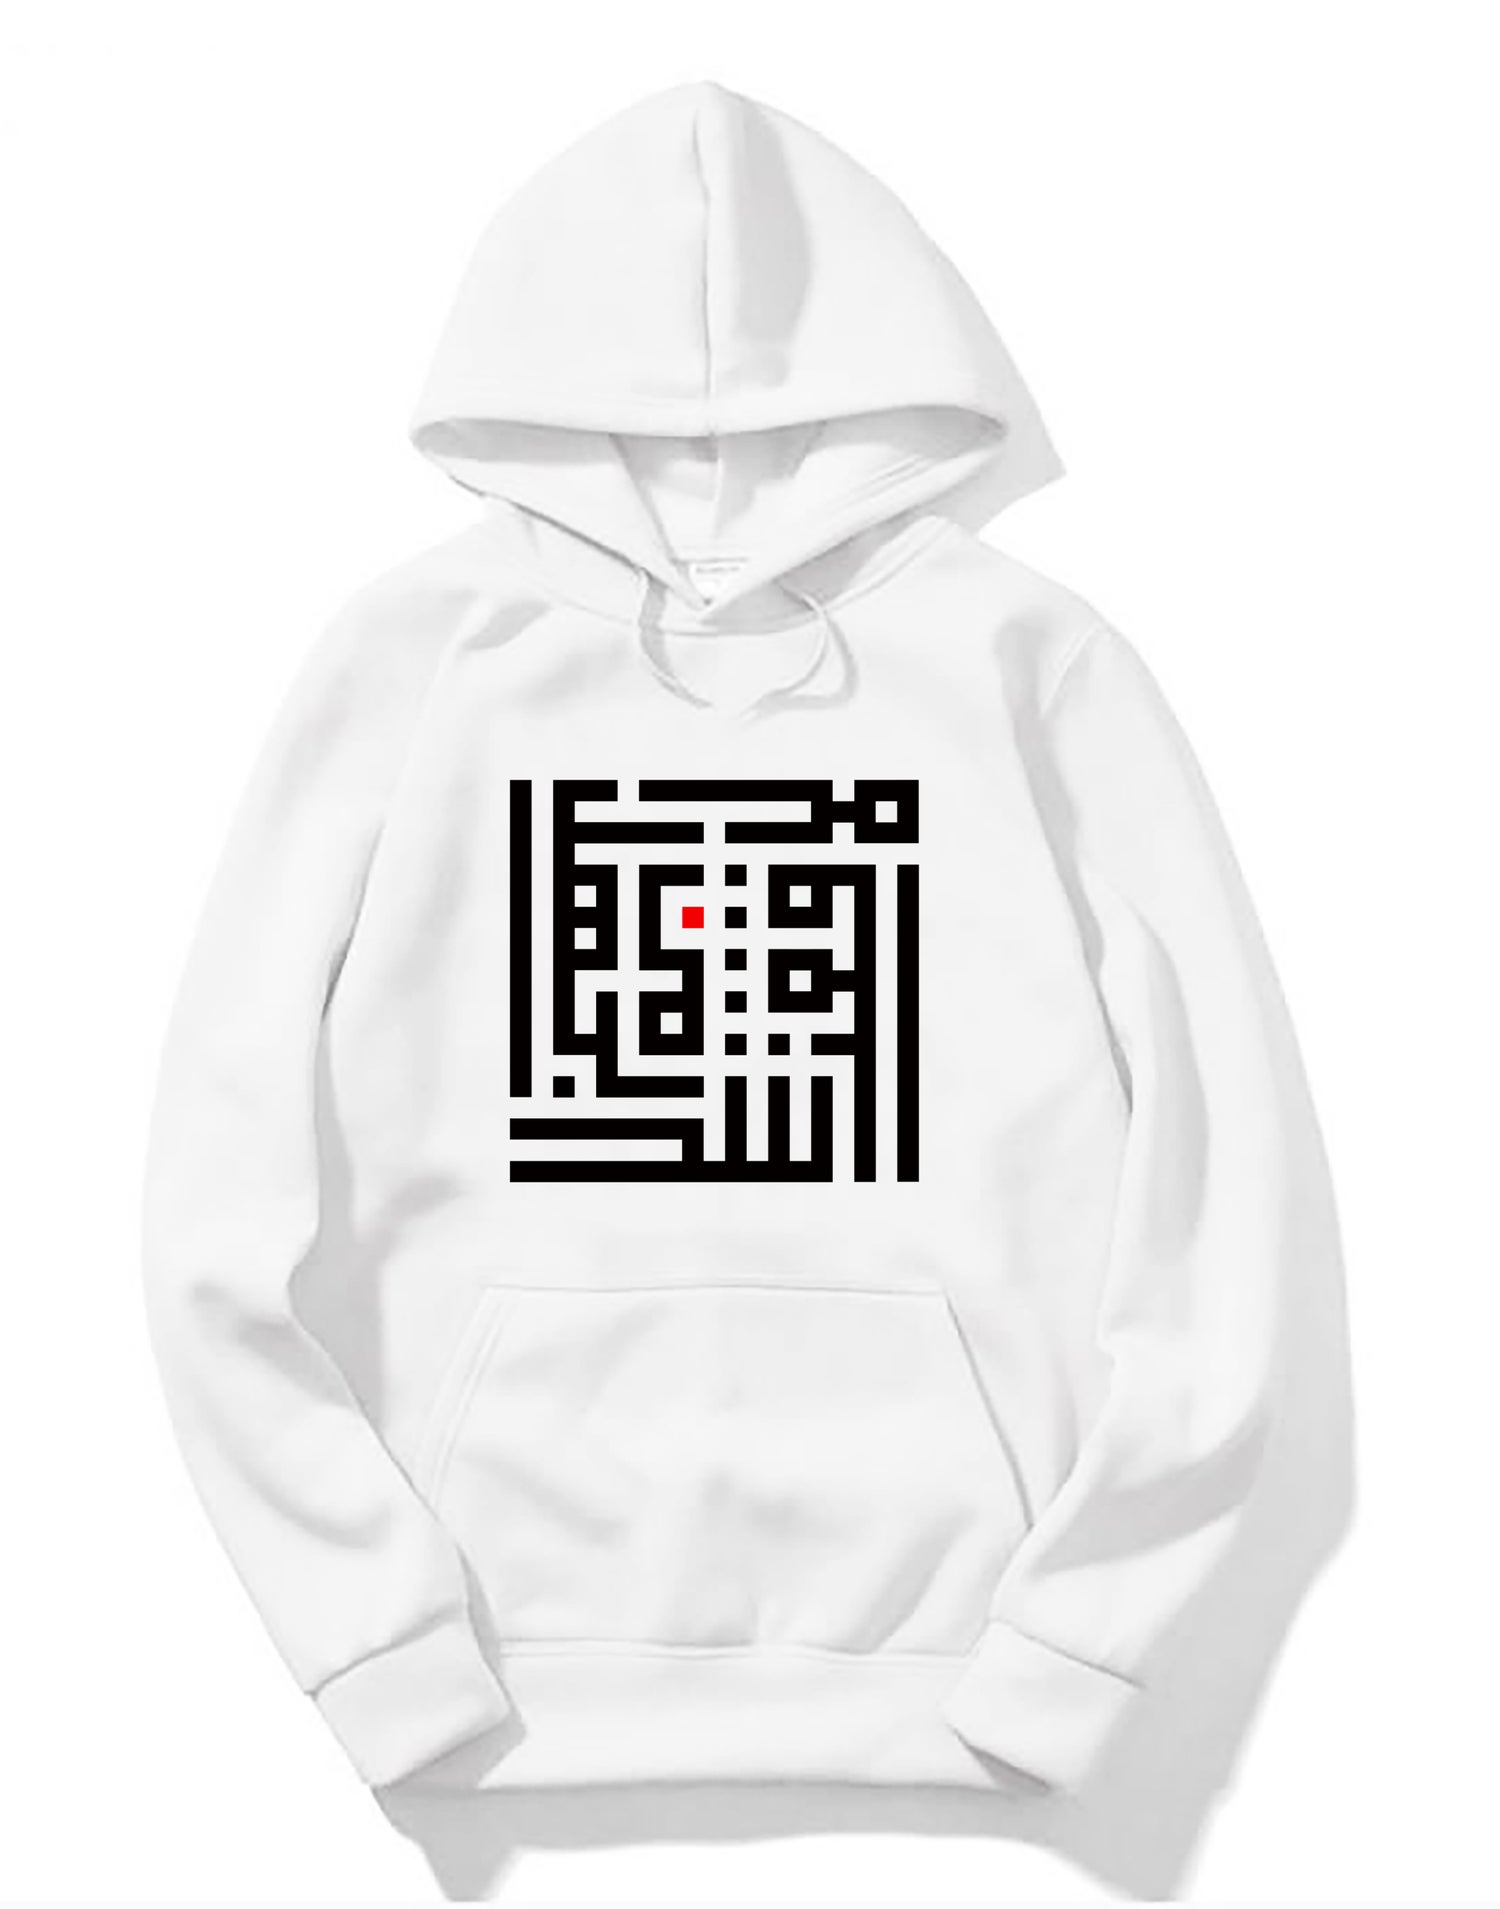 Image of Unisex Snow Hoodie - Black R calligraffiti by RamZ